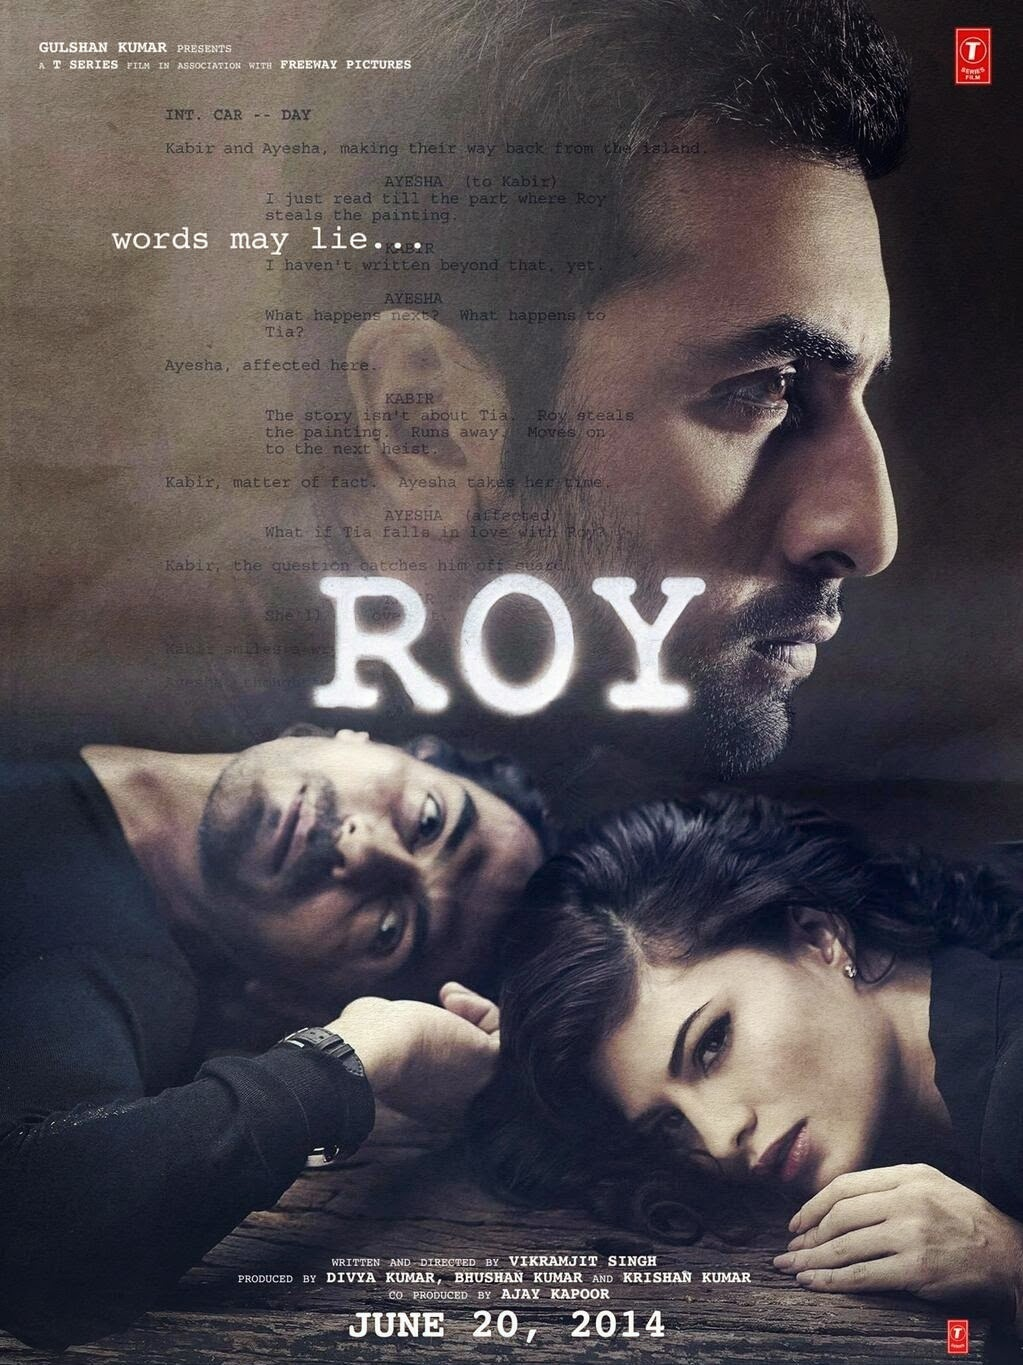 Love triangle of Ranbir Kapoor, Arjun Kapoor and Jaqueline on its first poster of Roy